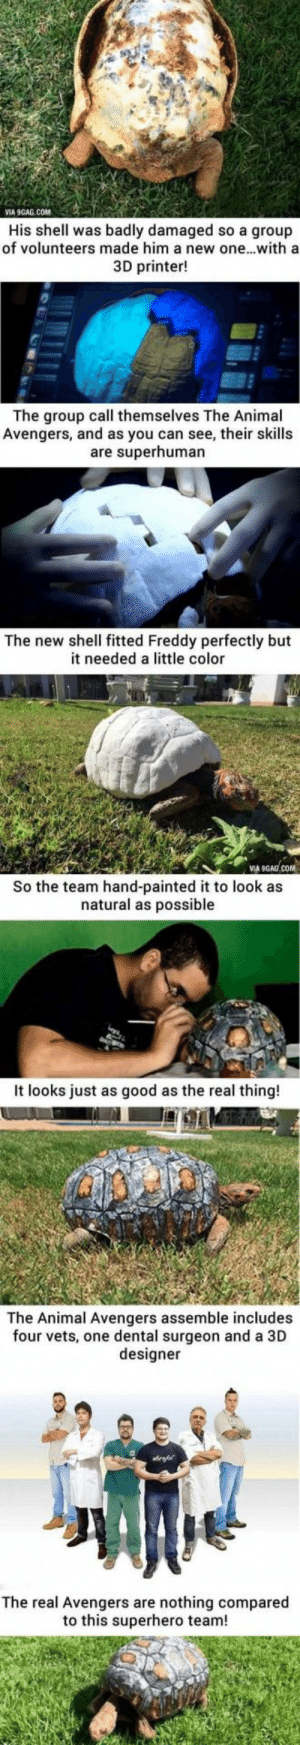 Freddy the turtle ☺️: VIA 9GAG.COM  His shell was badly damaged so a group  of volunteers made him a new one...witha  3D printer!  The group call themselves The Animal  Avengers, and as you can see, their skills  are superhuman  The new shell fitted Freddy perfectly but  it needed a little color  VIA  COM  So the team hand-painted it to look as  natural as possible  It looks just as good as the real thing!  The Animal Avengers assemble includes  four vets, one dental surgeon and a 3D  designer  The real Avengers are nothing compared  to this superhero team! Freddy the turtle ☺️